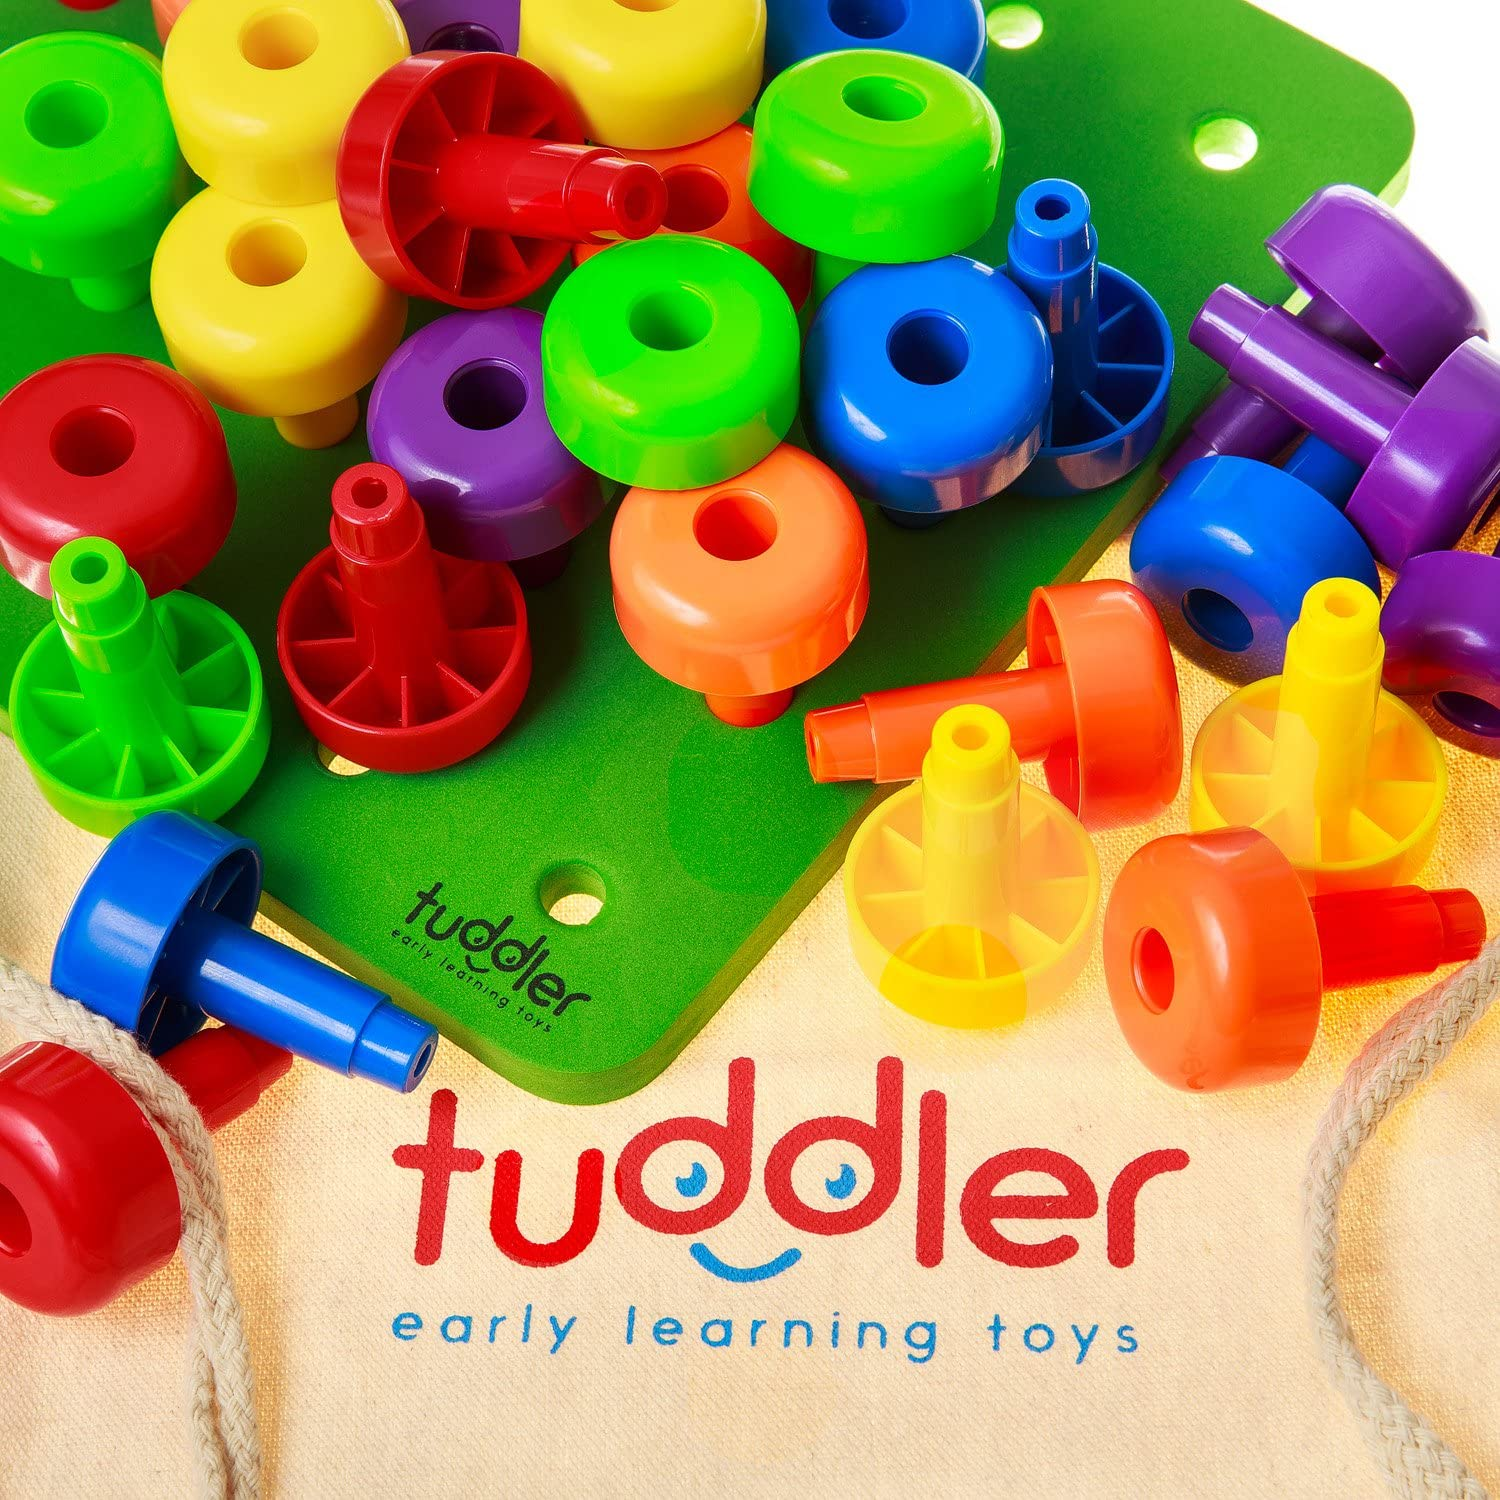 Pattern Card Tuddler Brightly Colored Stackable Pegs and Peg Board Set Drawstring Backpack for portability and neat storage Montessori Educational Toy for Toddlers and Kids